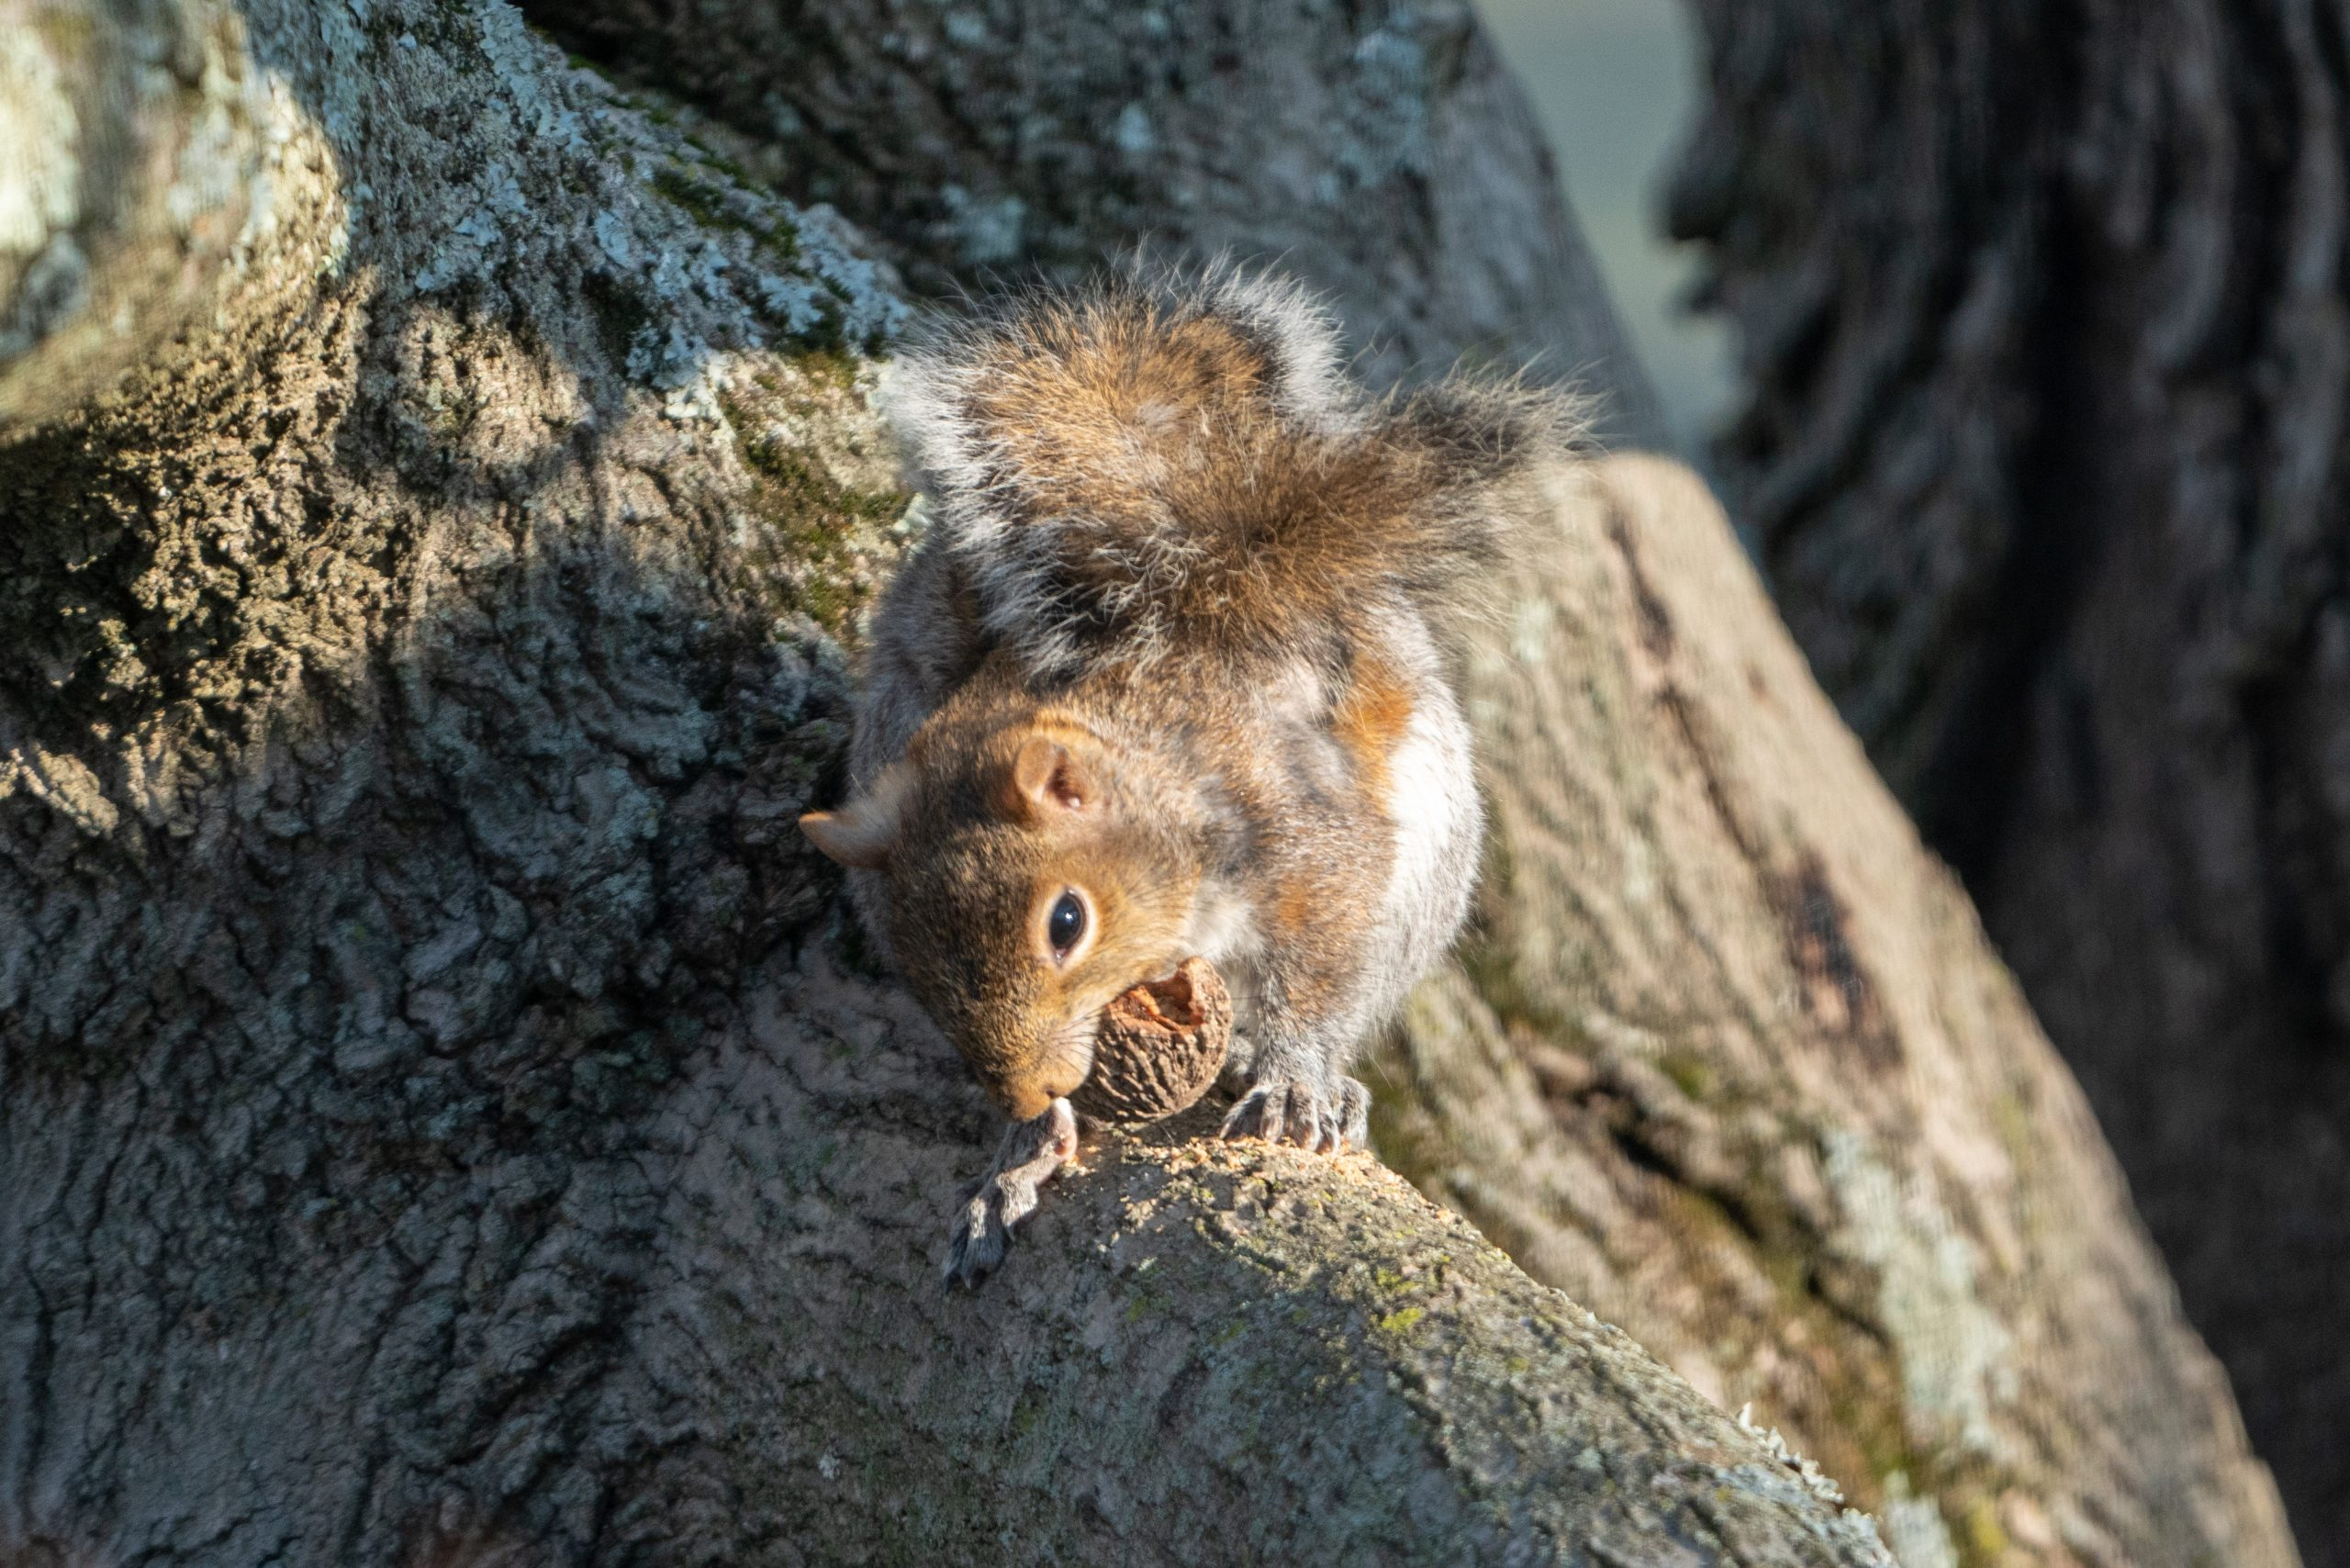 A squirrel sits in a tree, working to crack open a walnut.